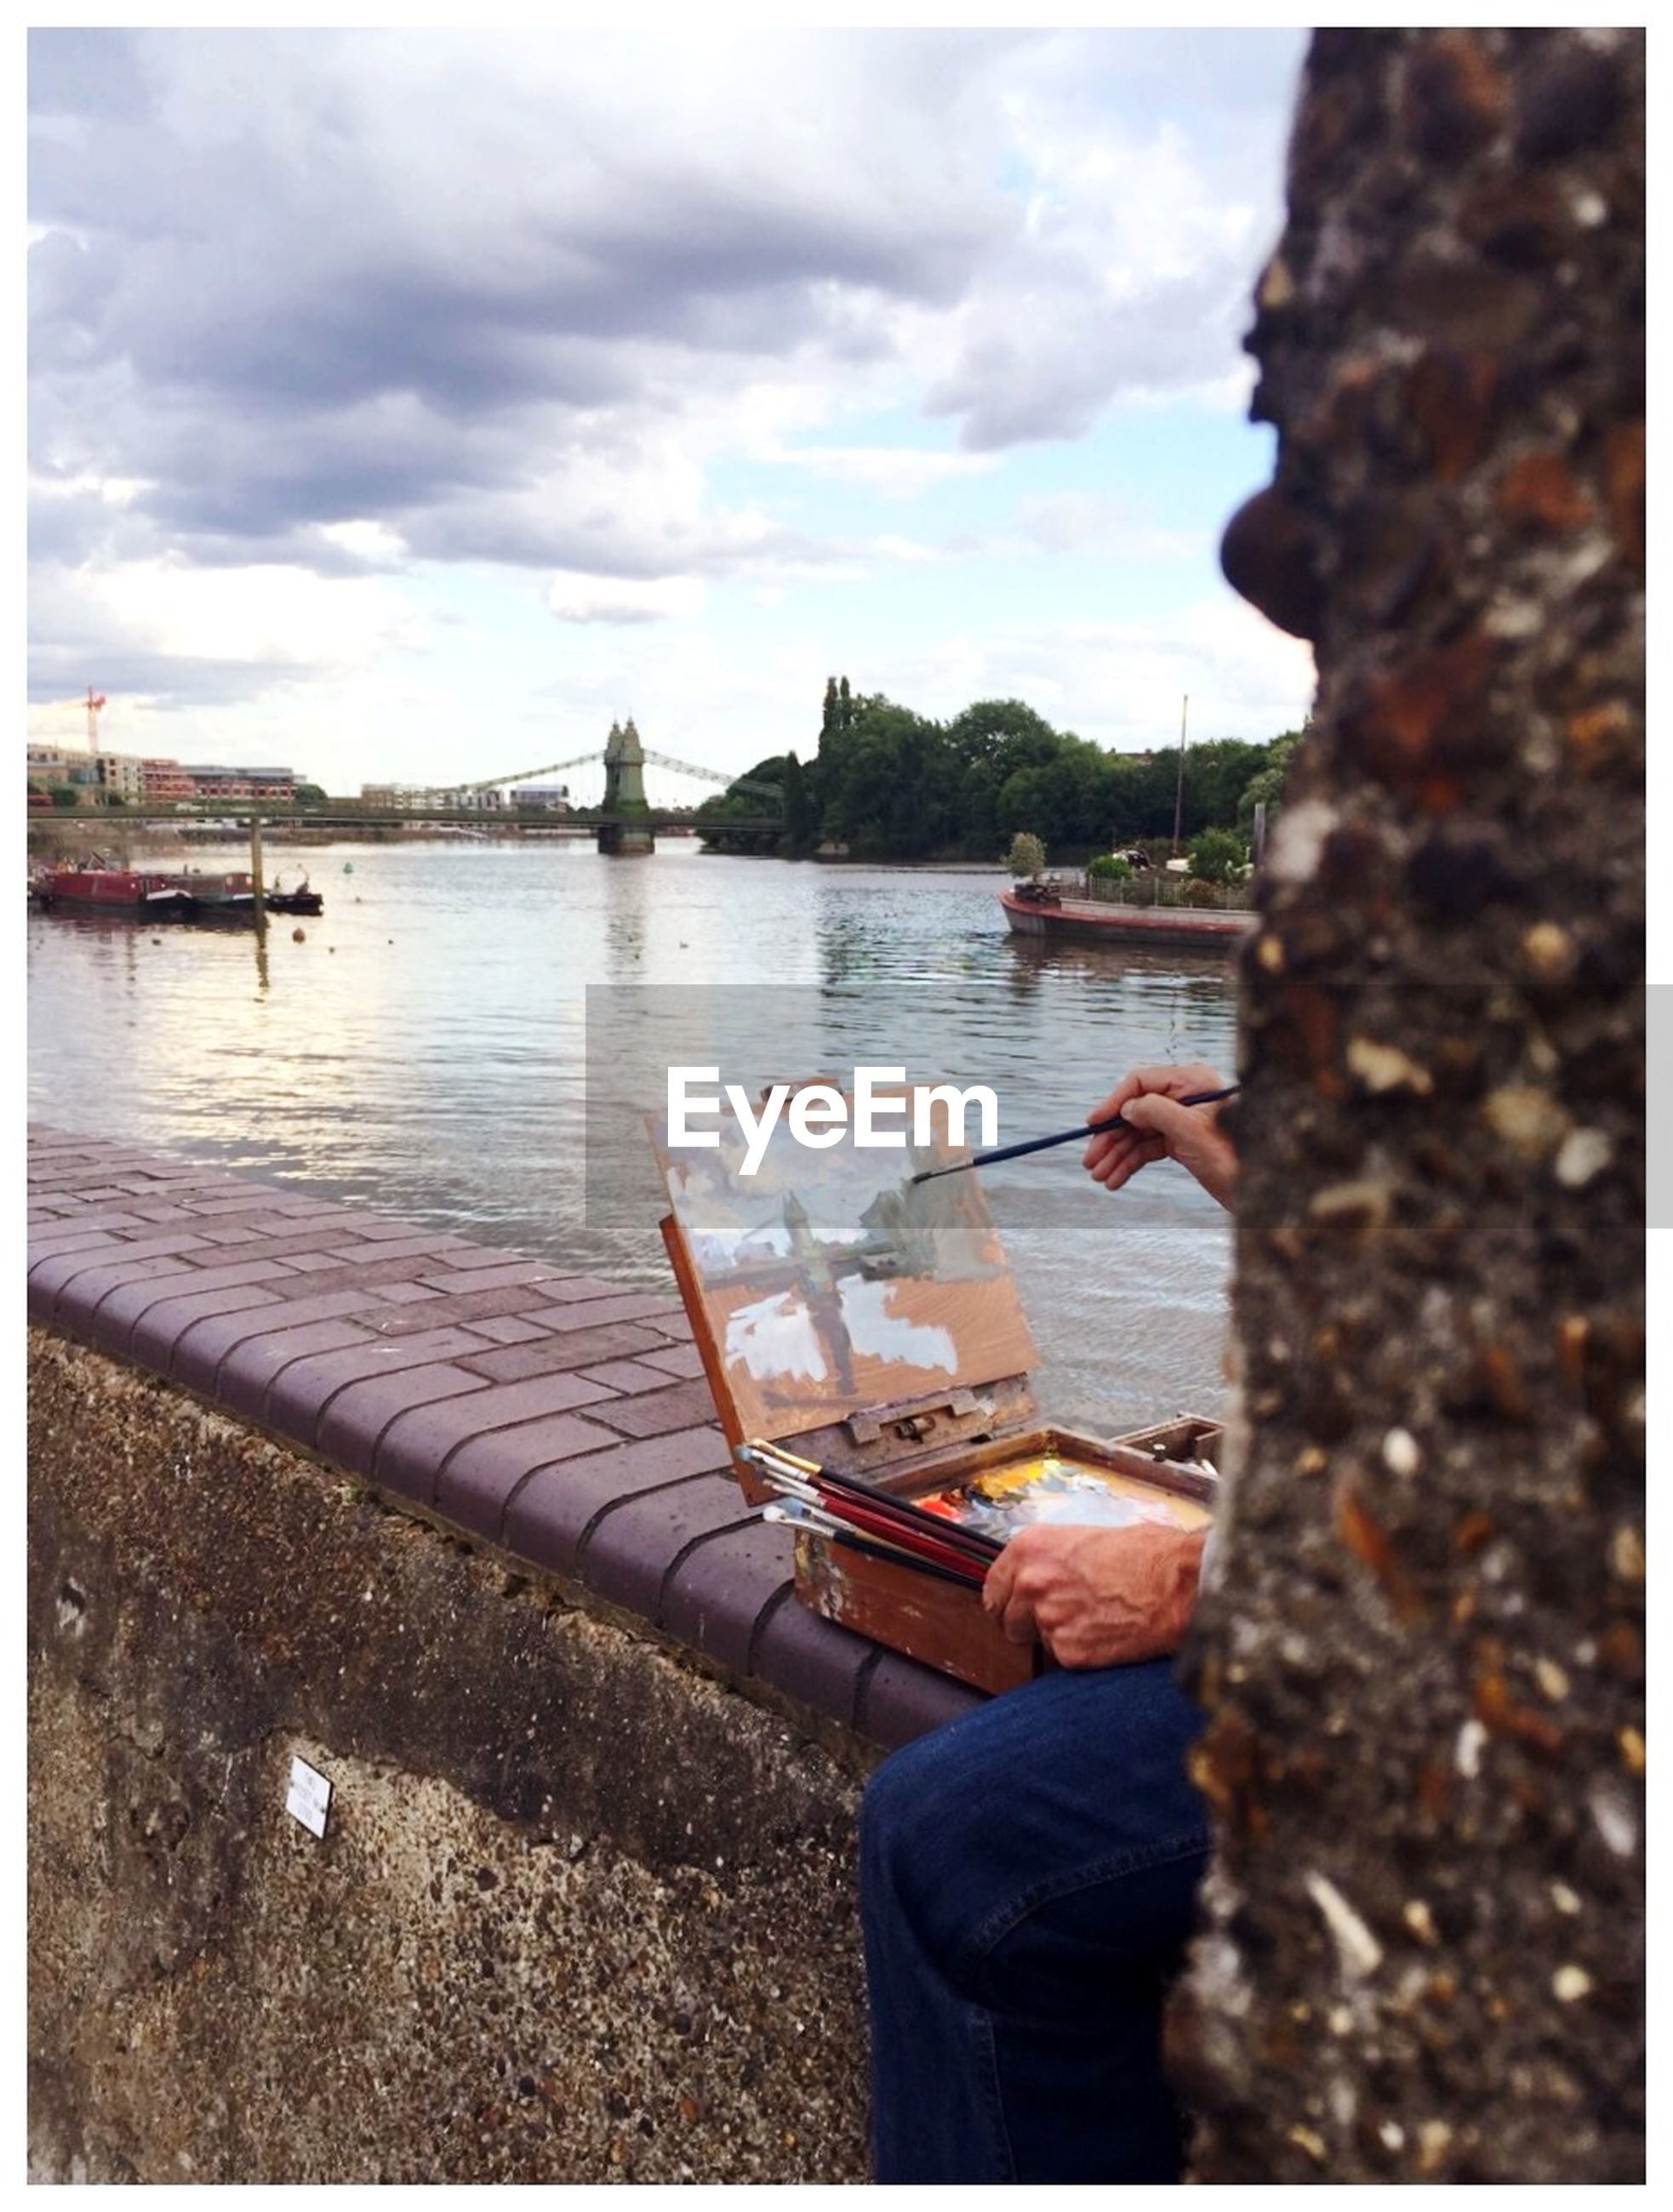 Cropped image of man painting while sitting on retaining wall by river